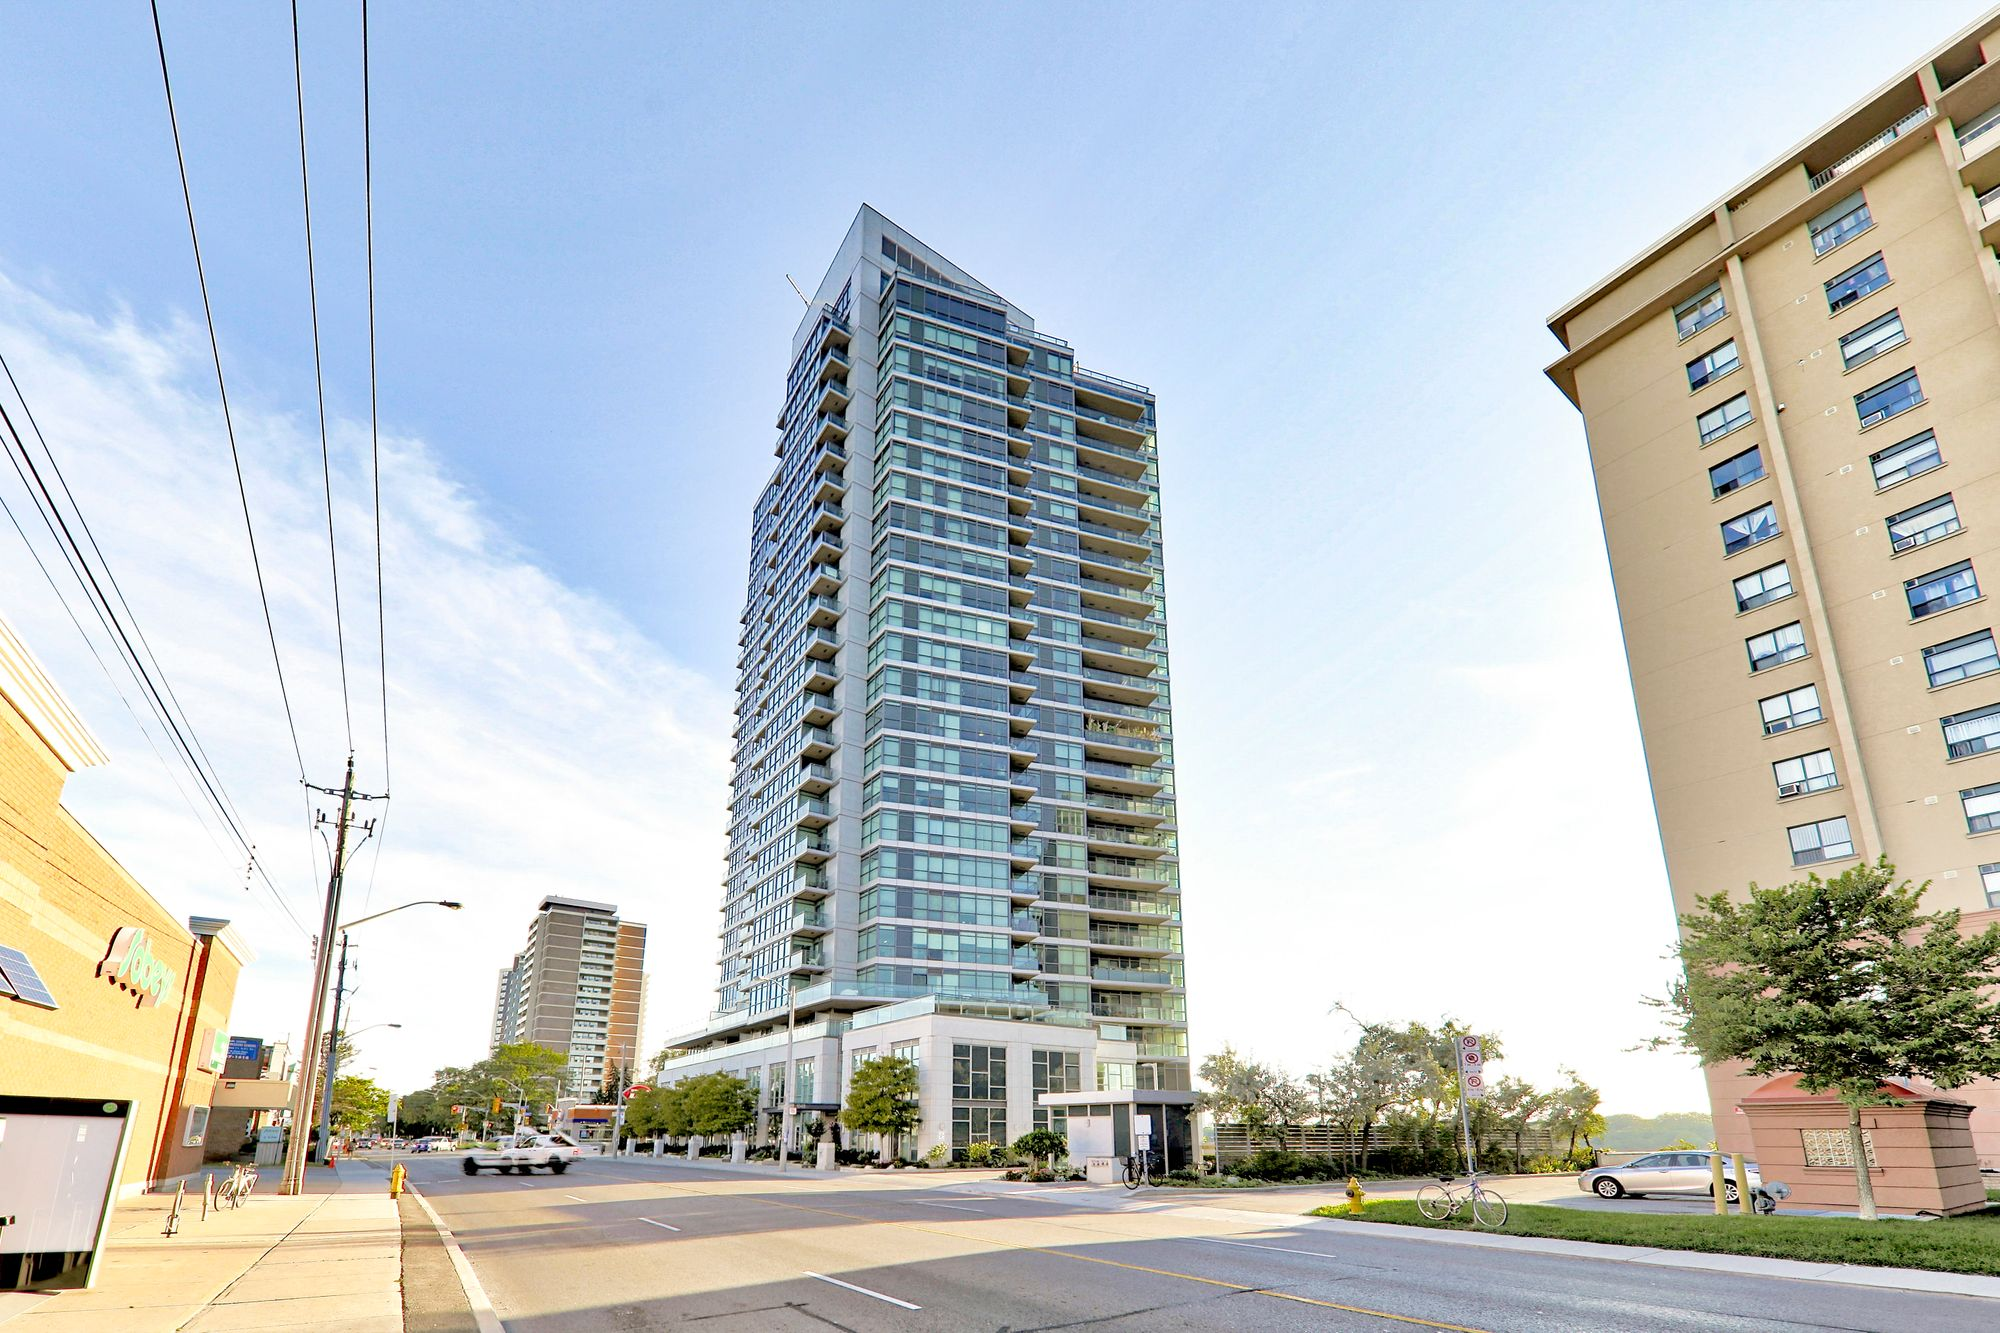 1048 Broadview Ave. This condo at Minto Skyy is located in  East York, Toronto - image #2 of 7 by Strata.ca